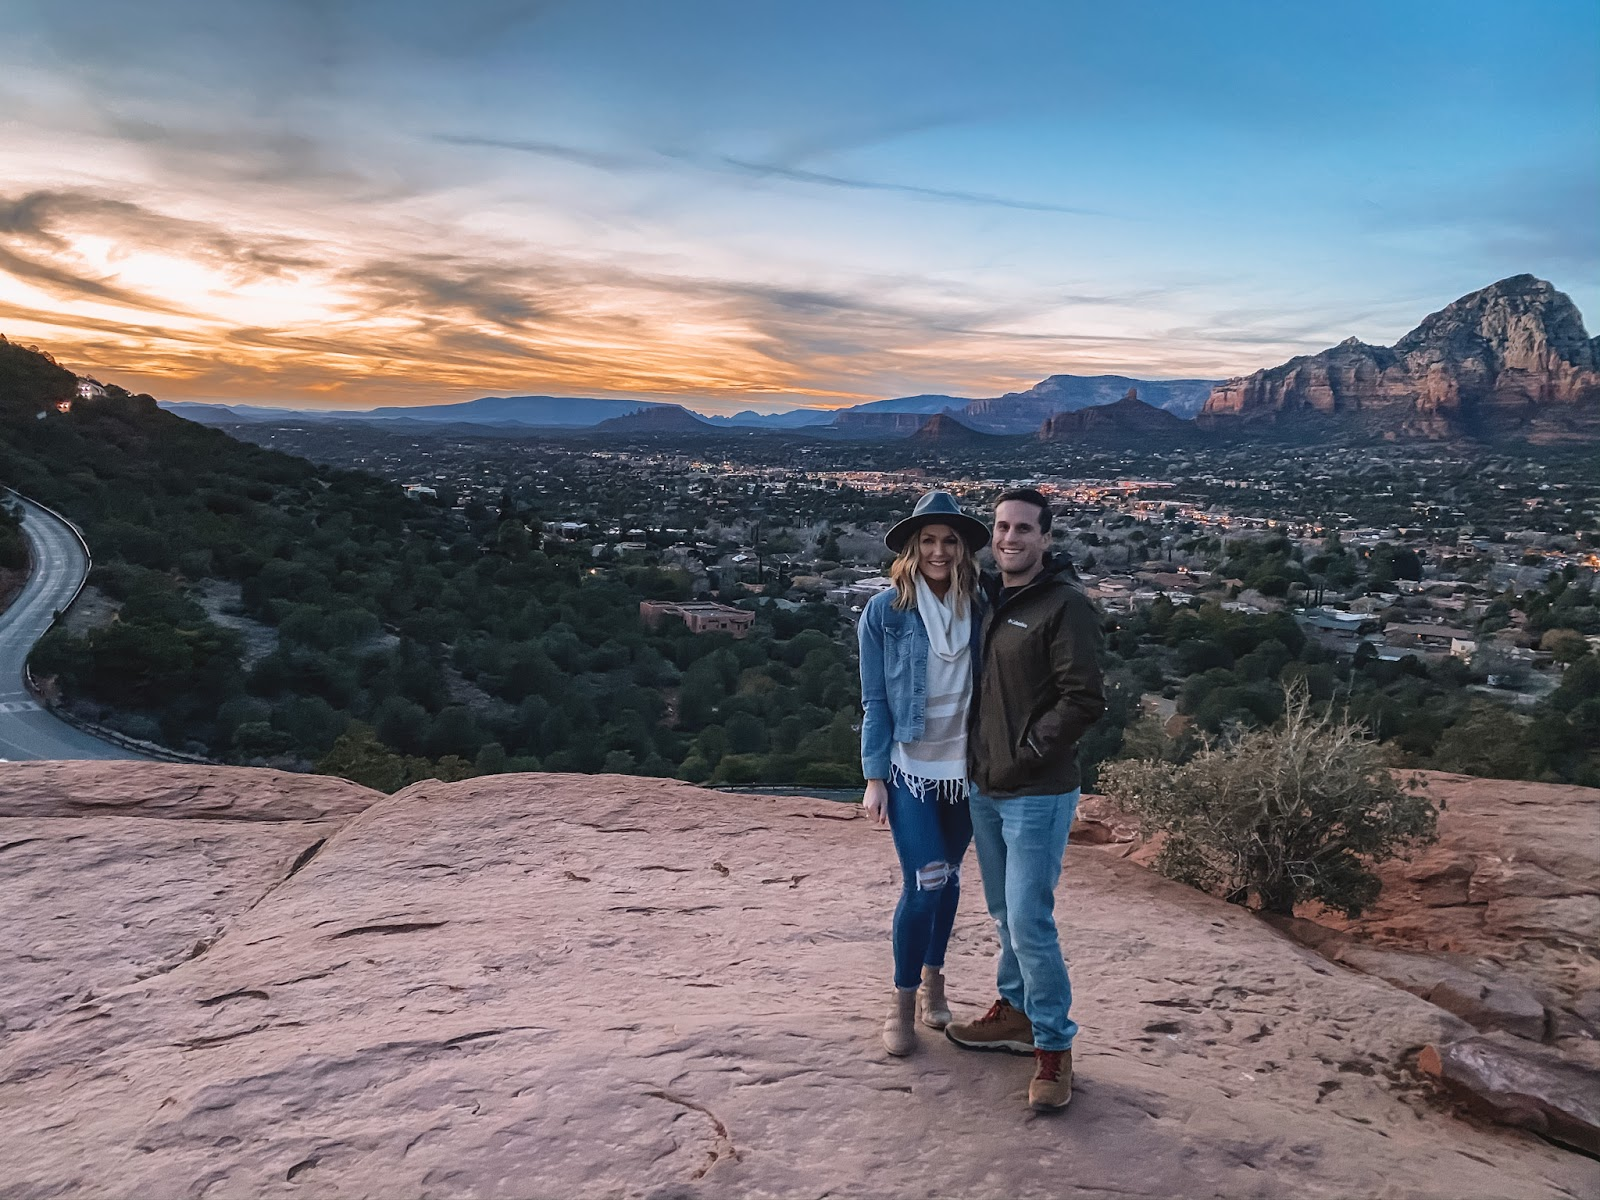 airport mesa is the best place to watch the sunset in sedona